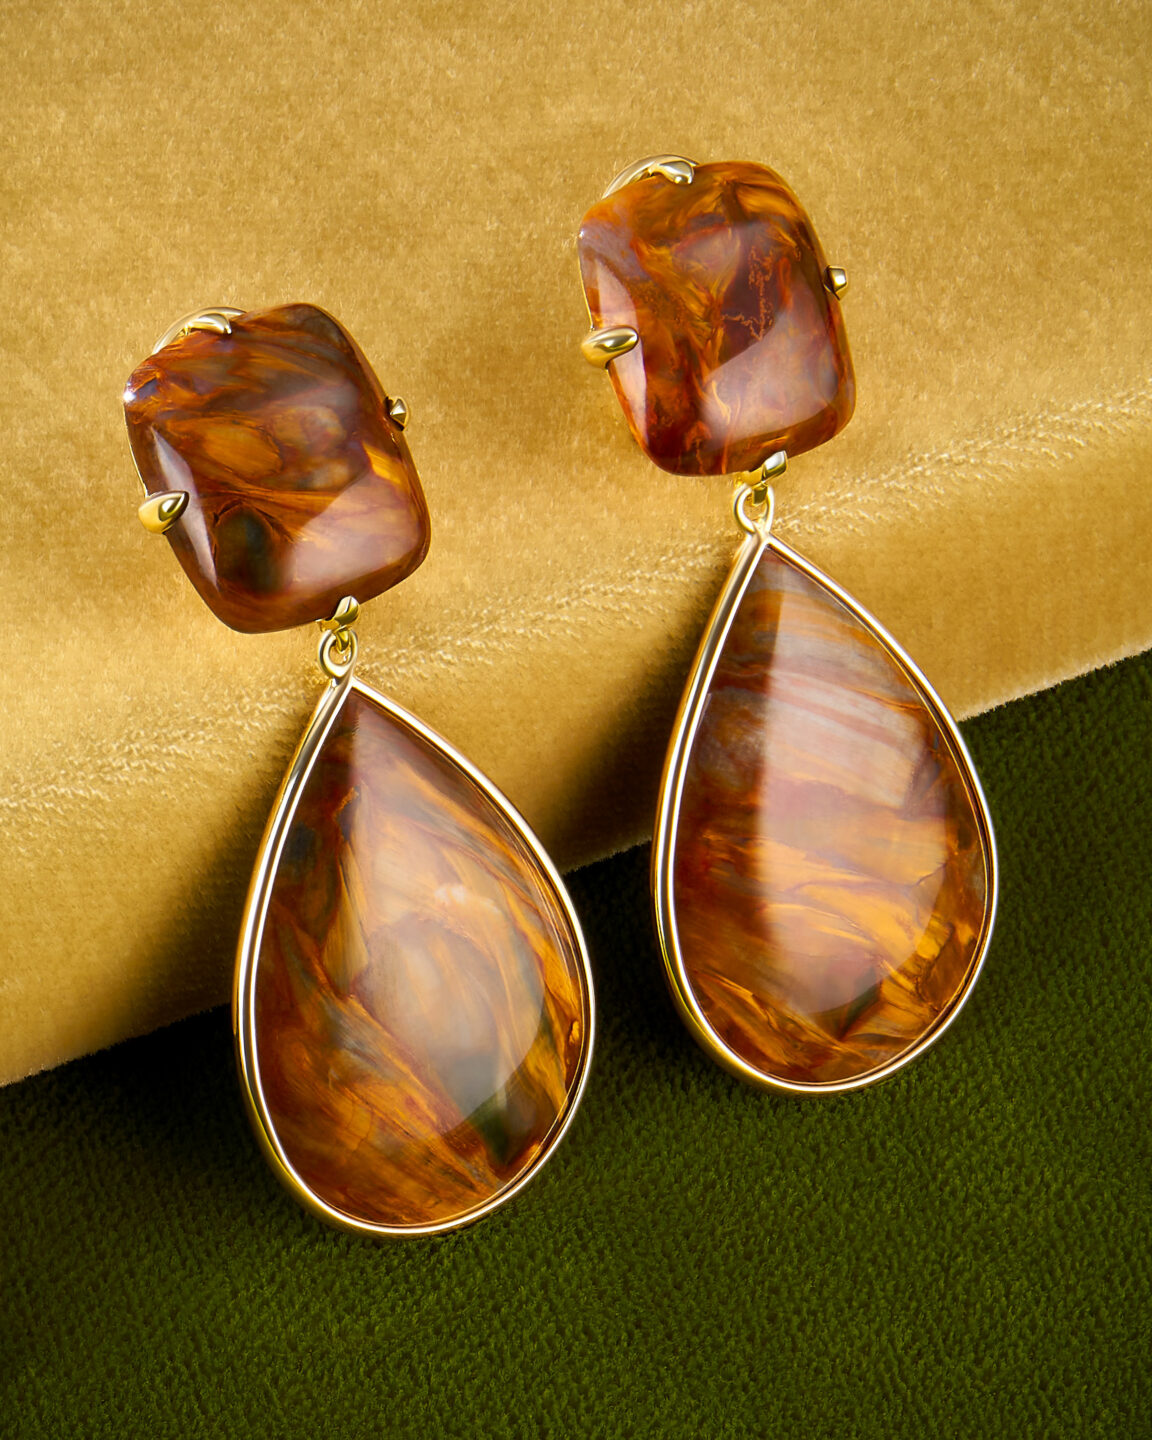 mish_products_earrings_Roadster-BrwnPieter-ER-4